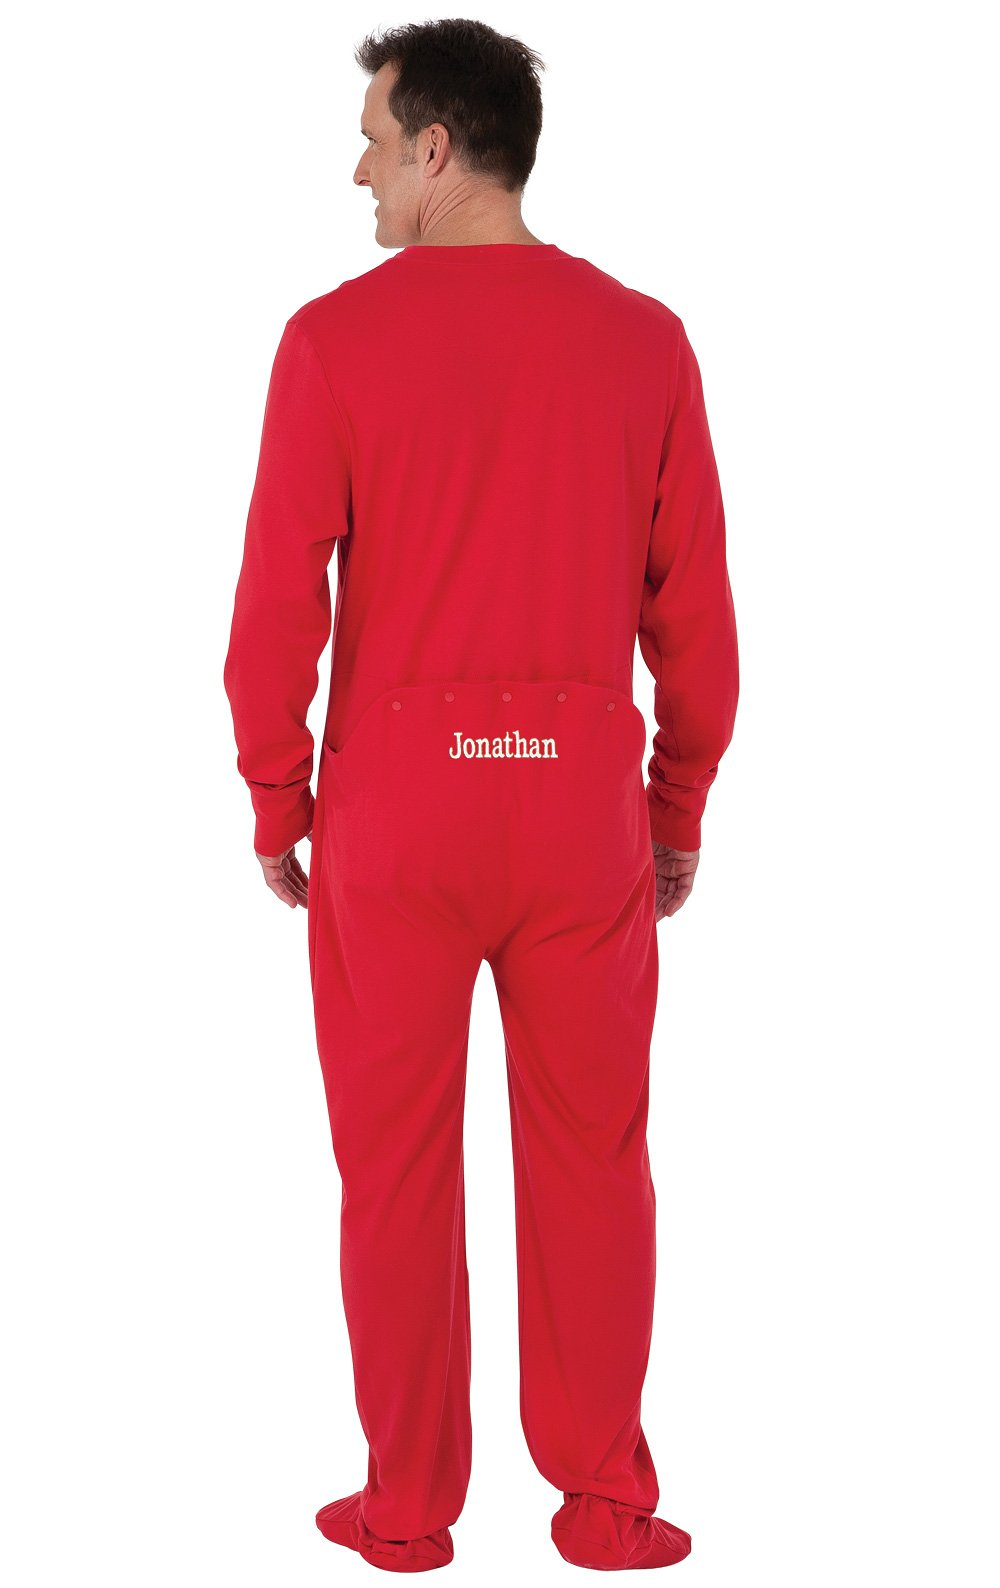 PajamaGram Personalized Men's Cotton Dropseat Footie Pajamas, Red, MED